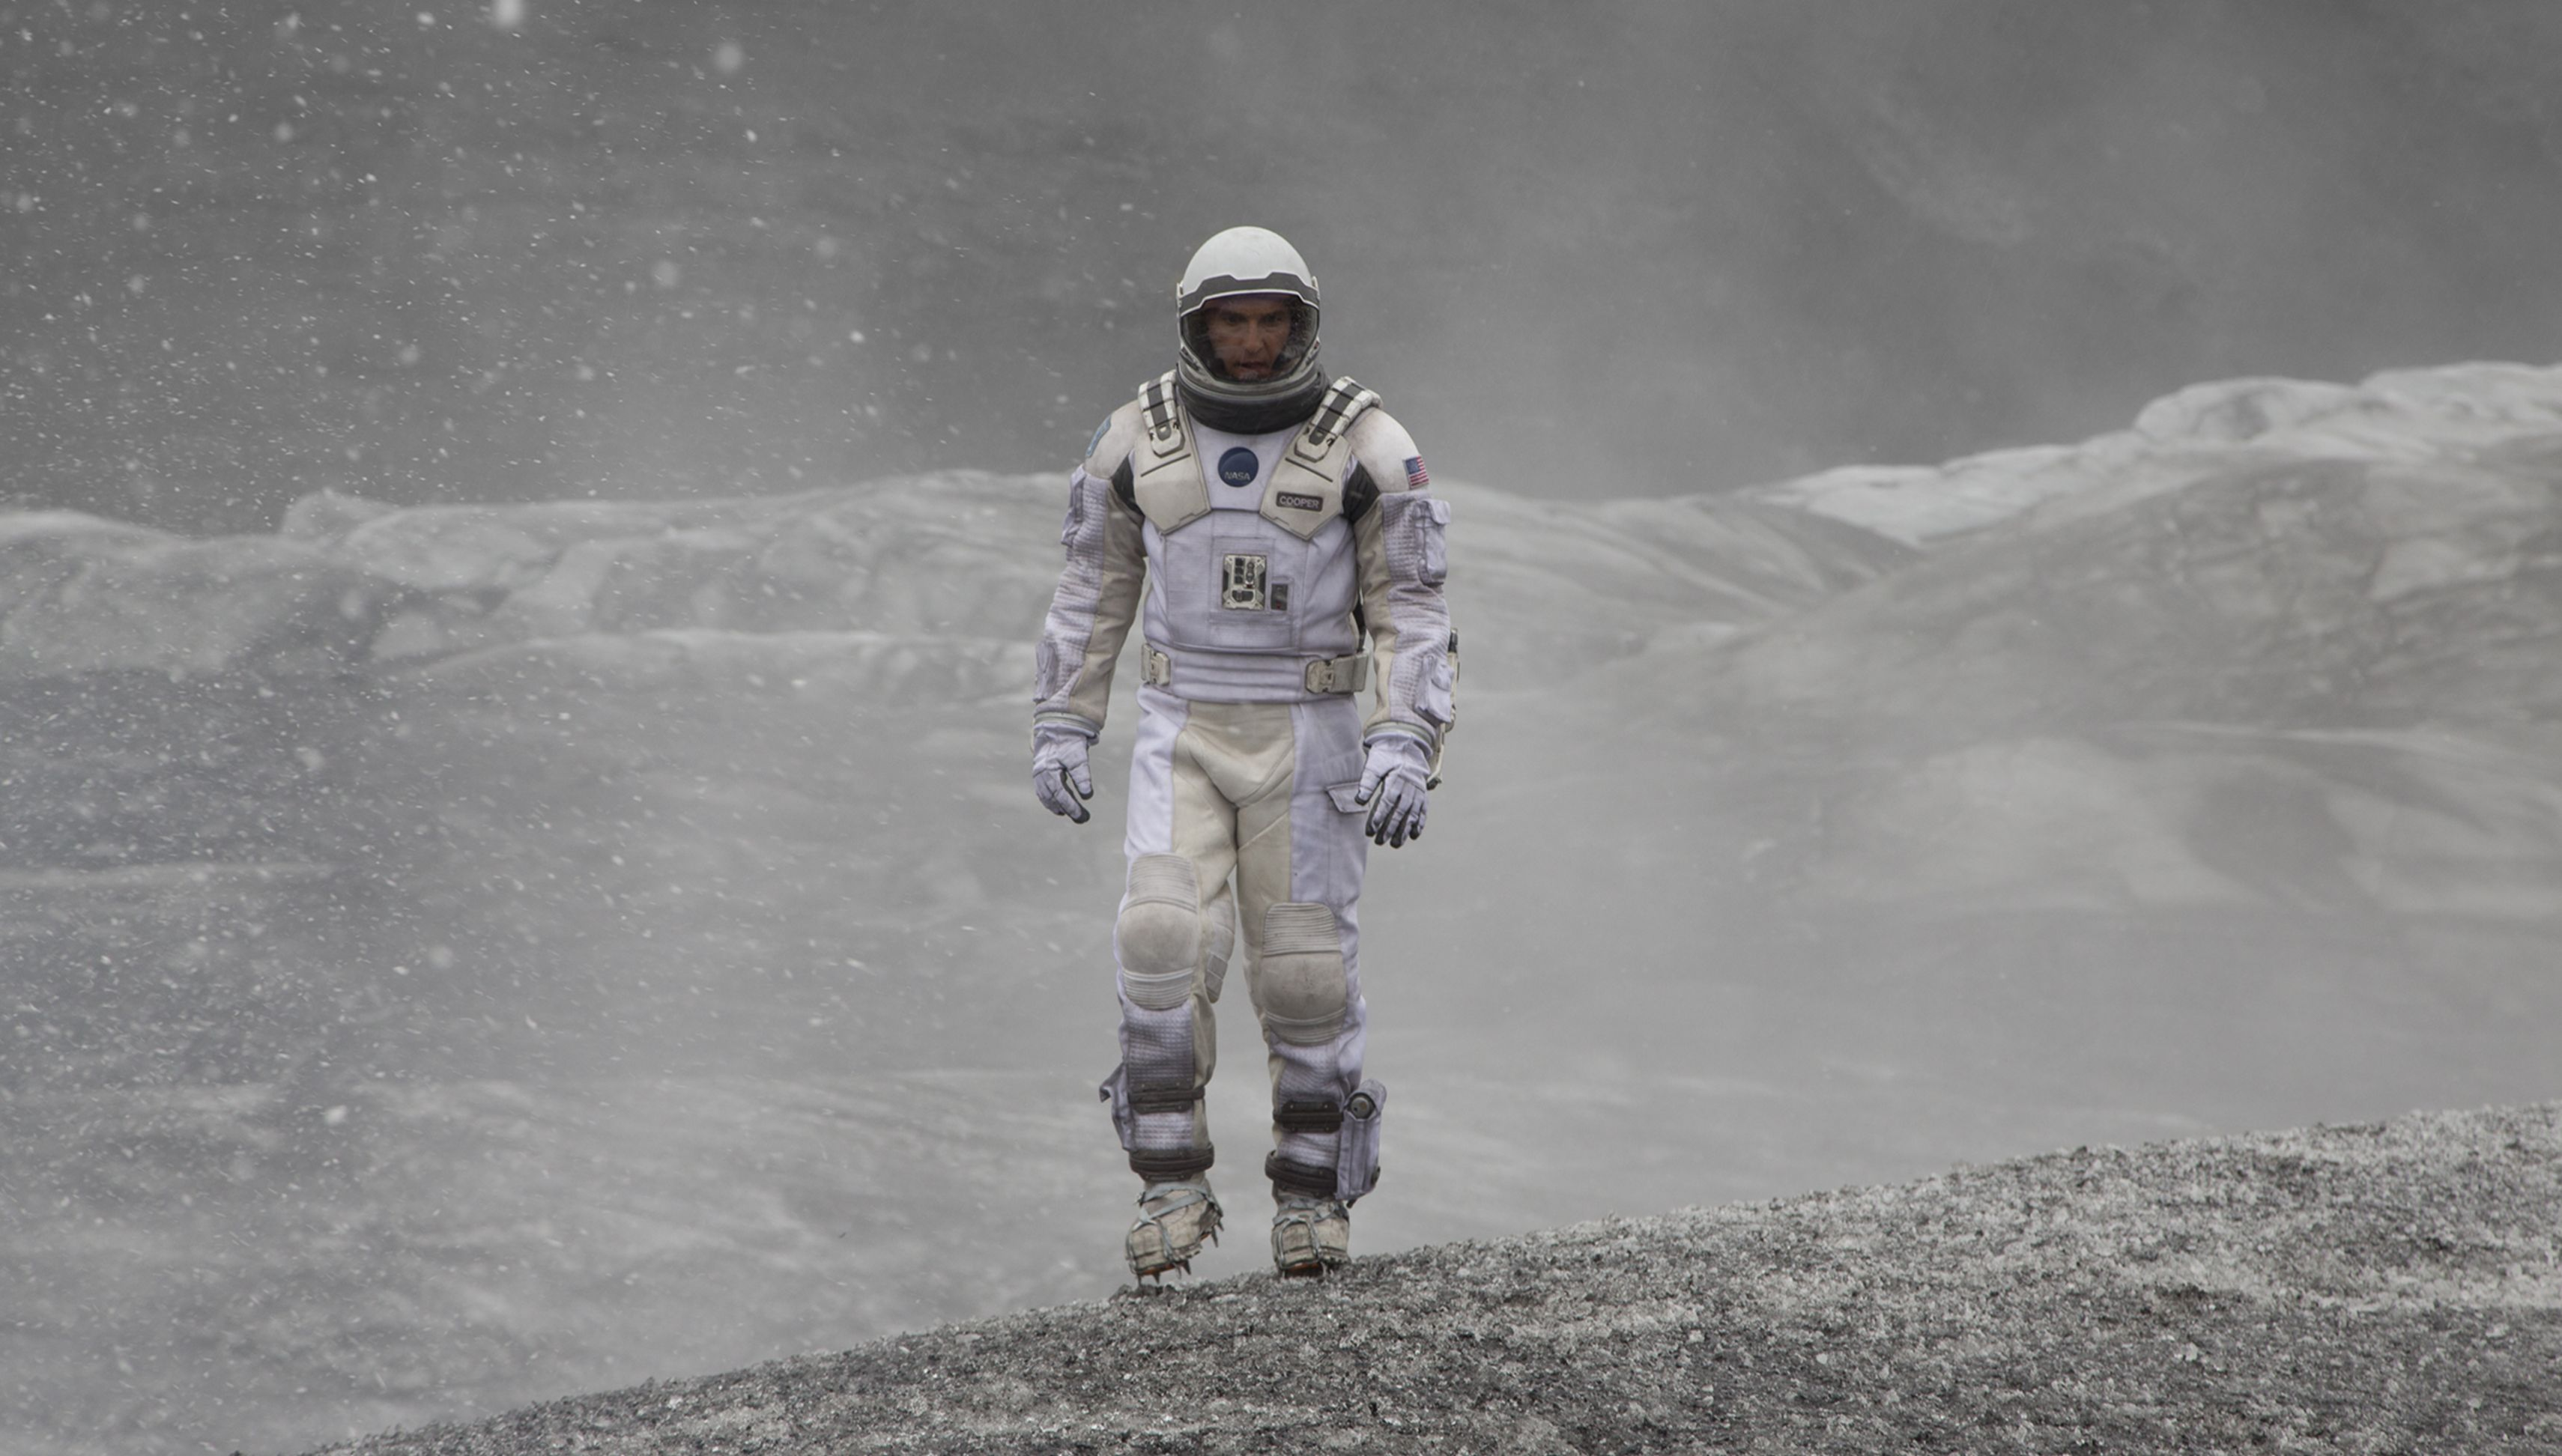 Matthew McConaughey walks around on another planet - Interst